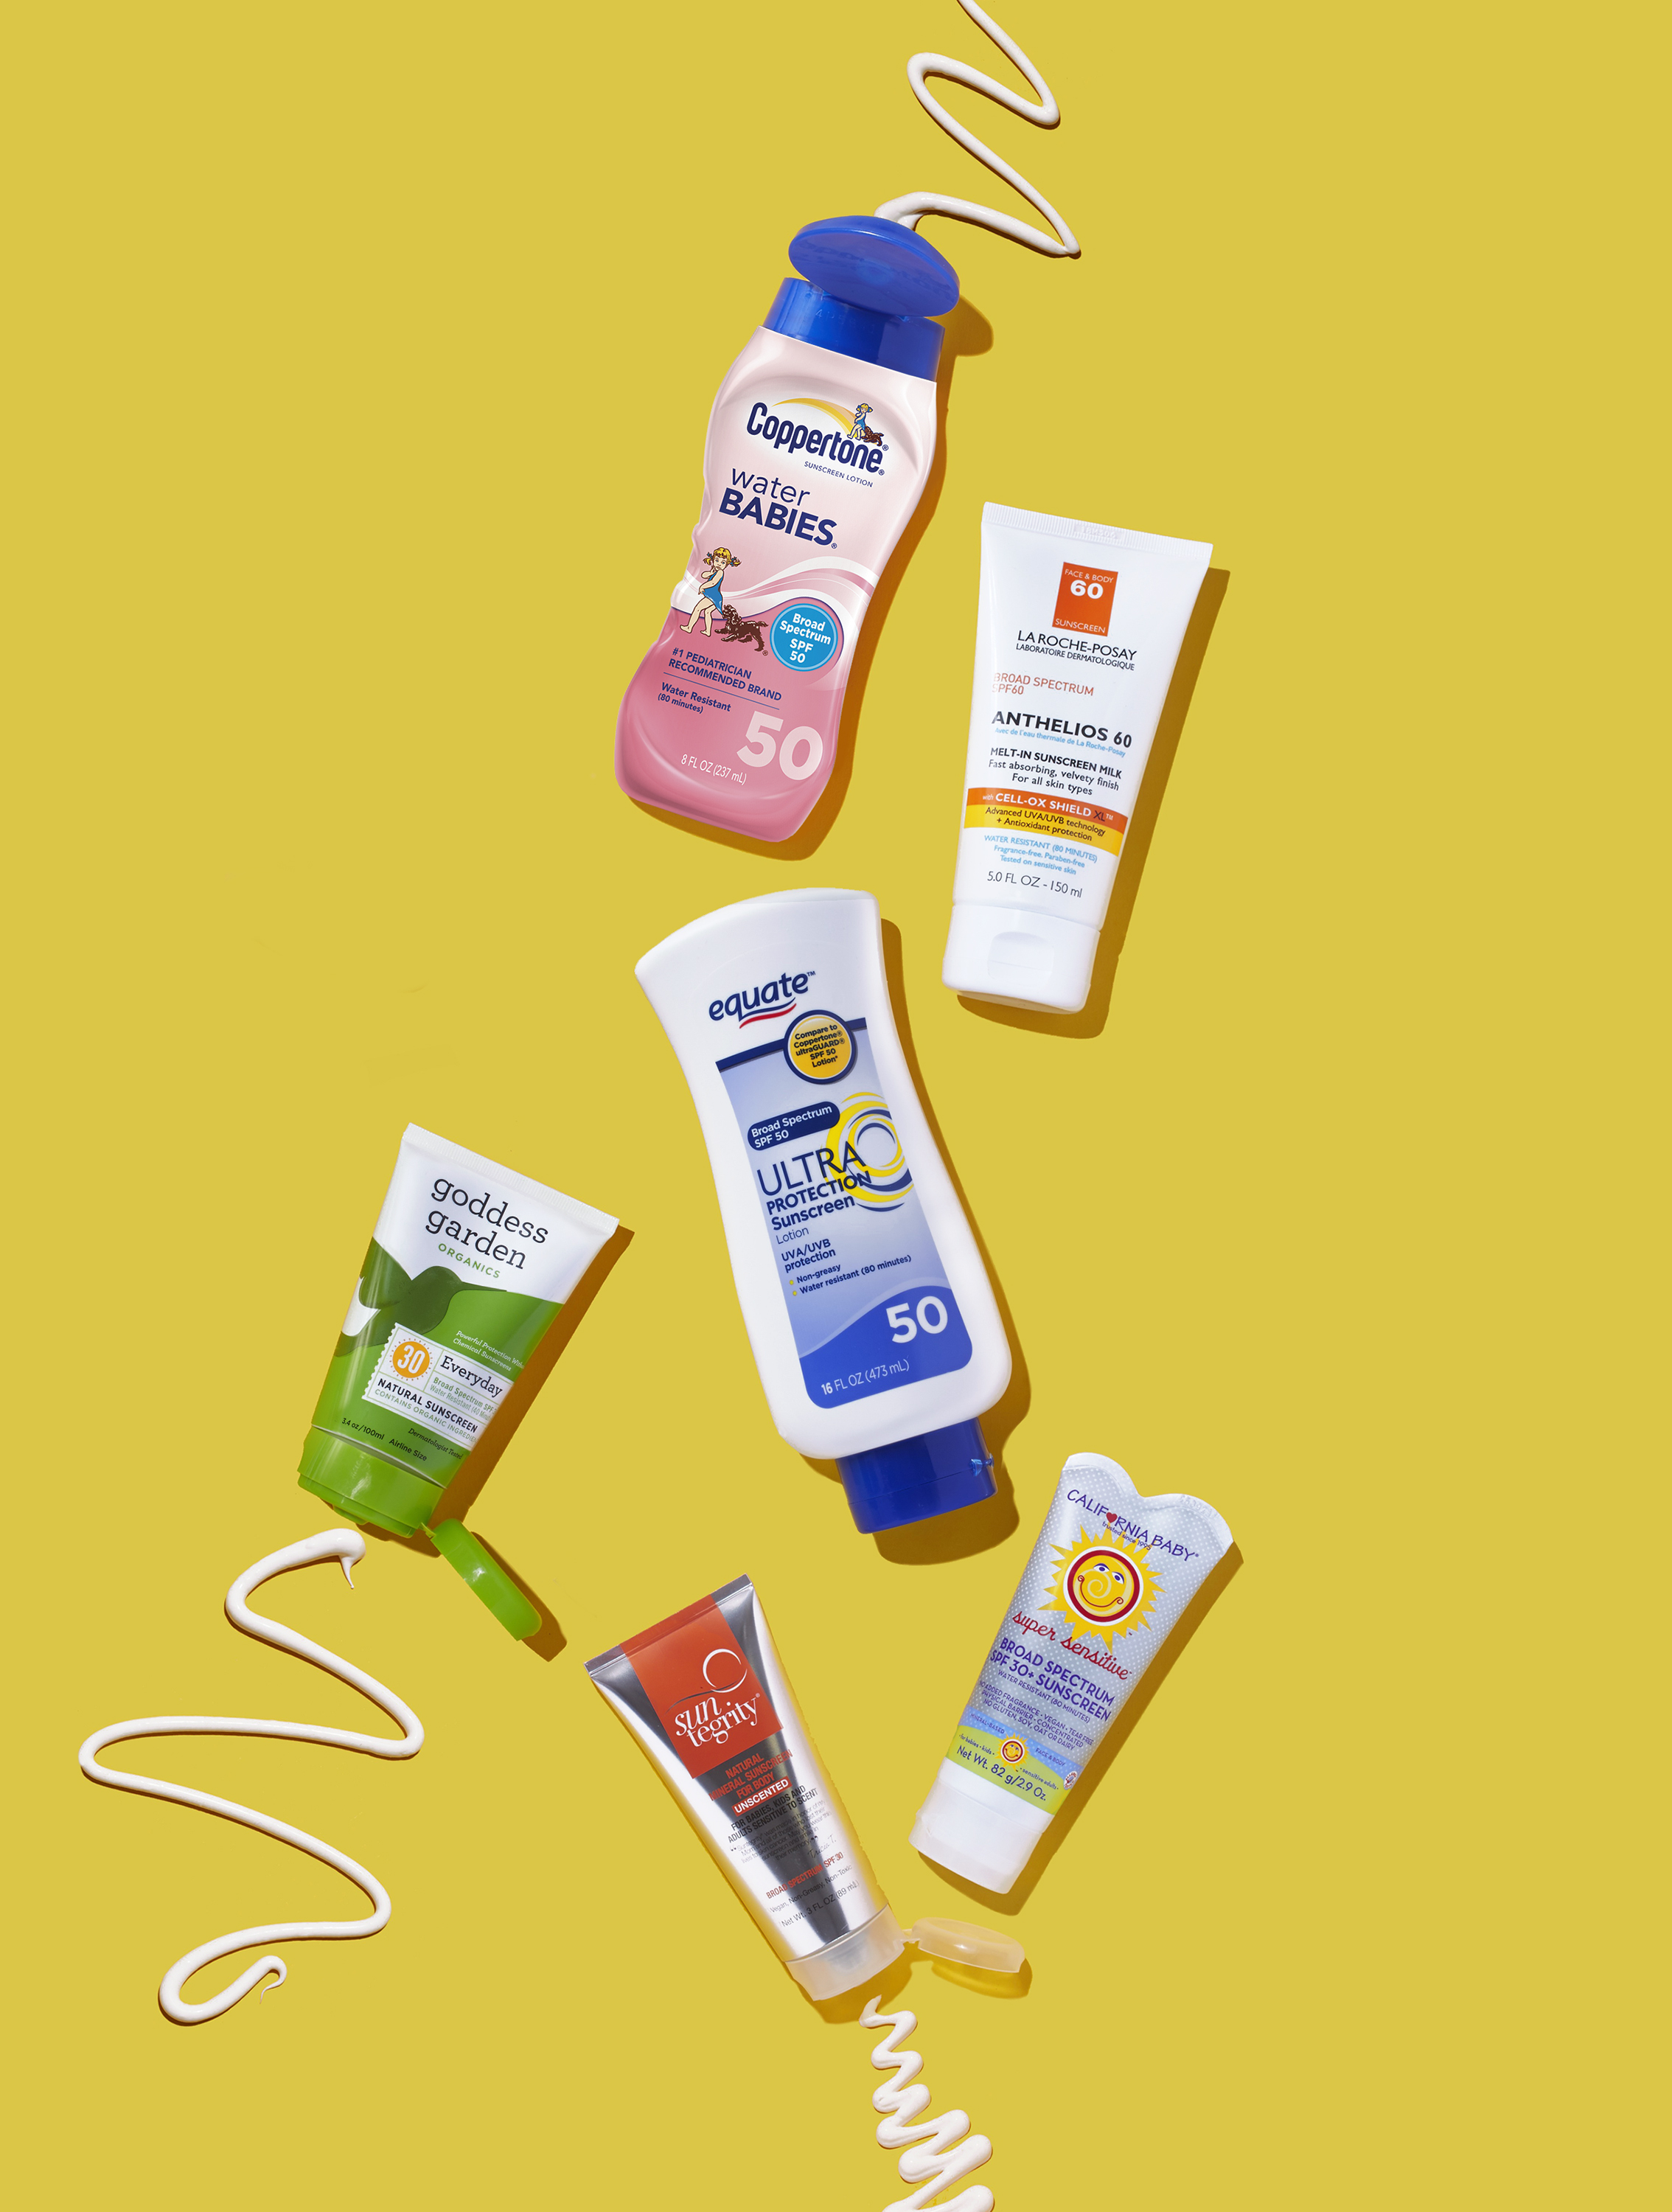 Top sunscreens are put to the test.